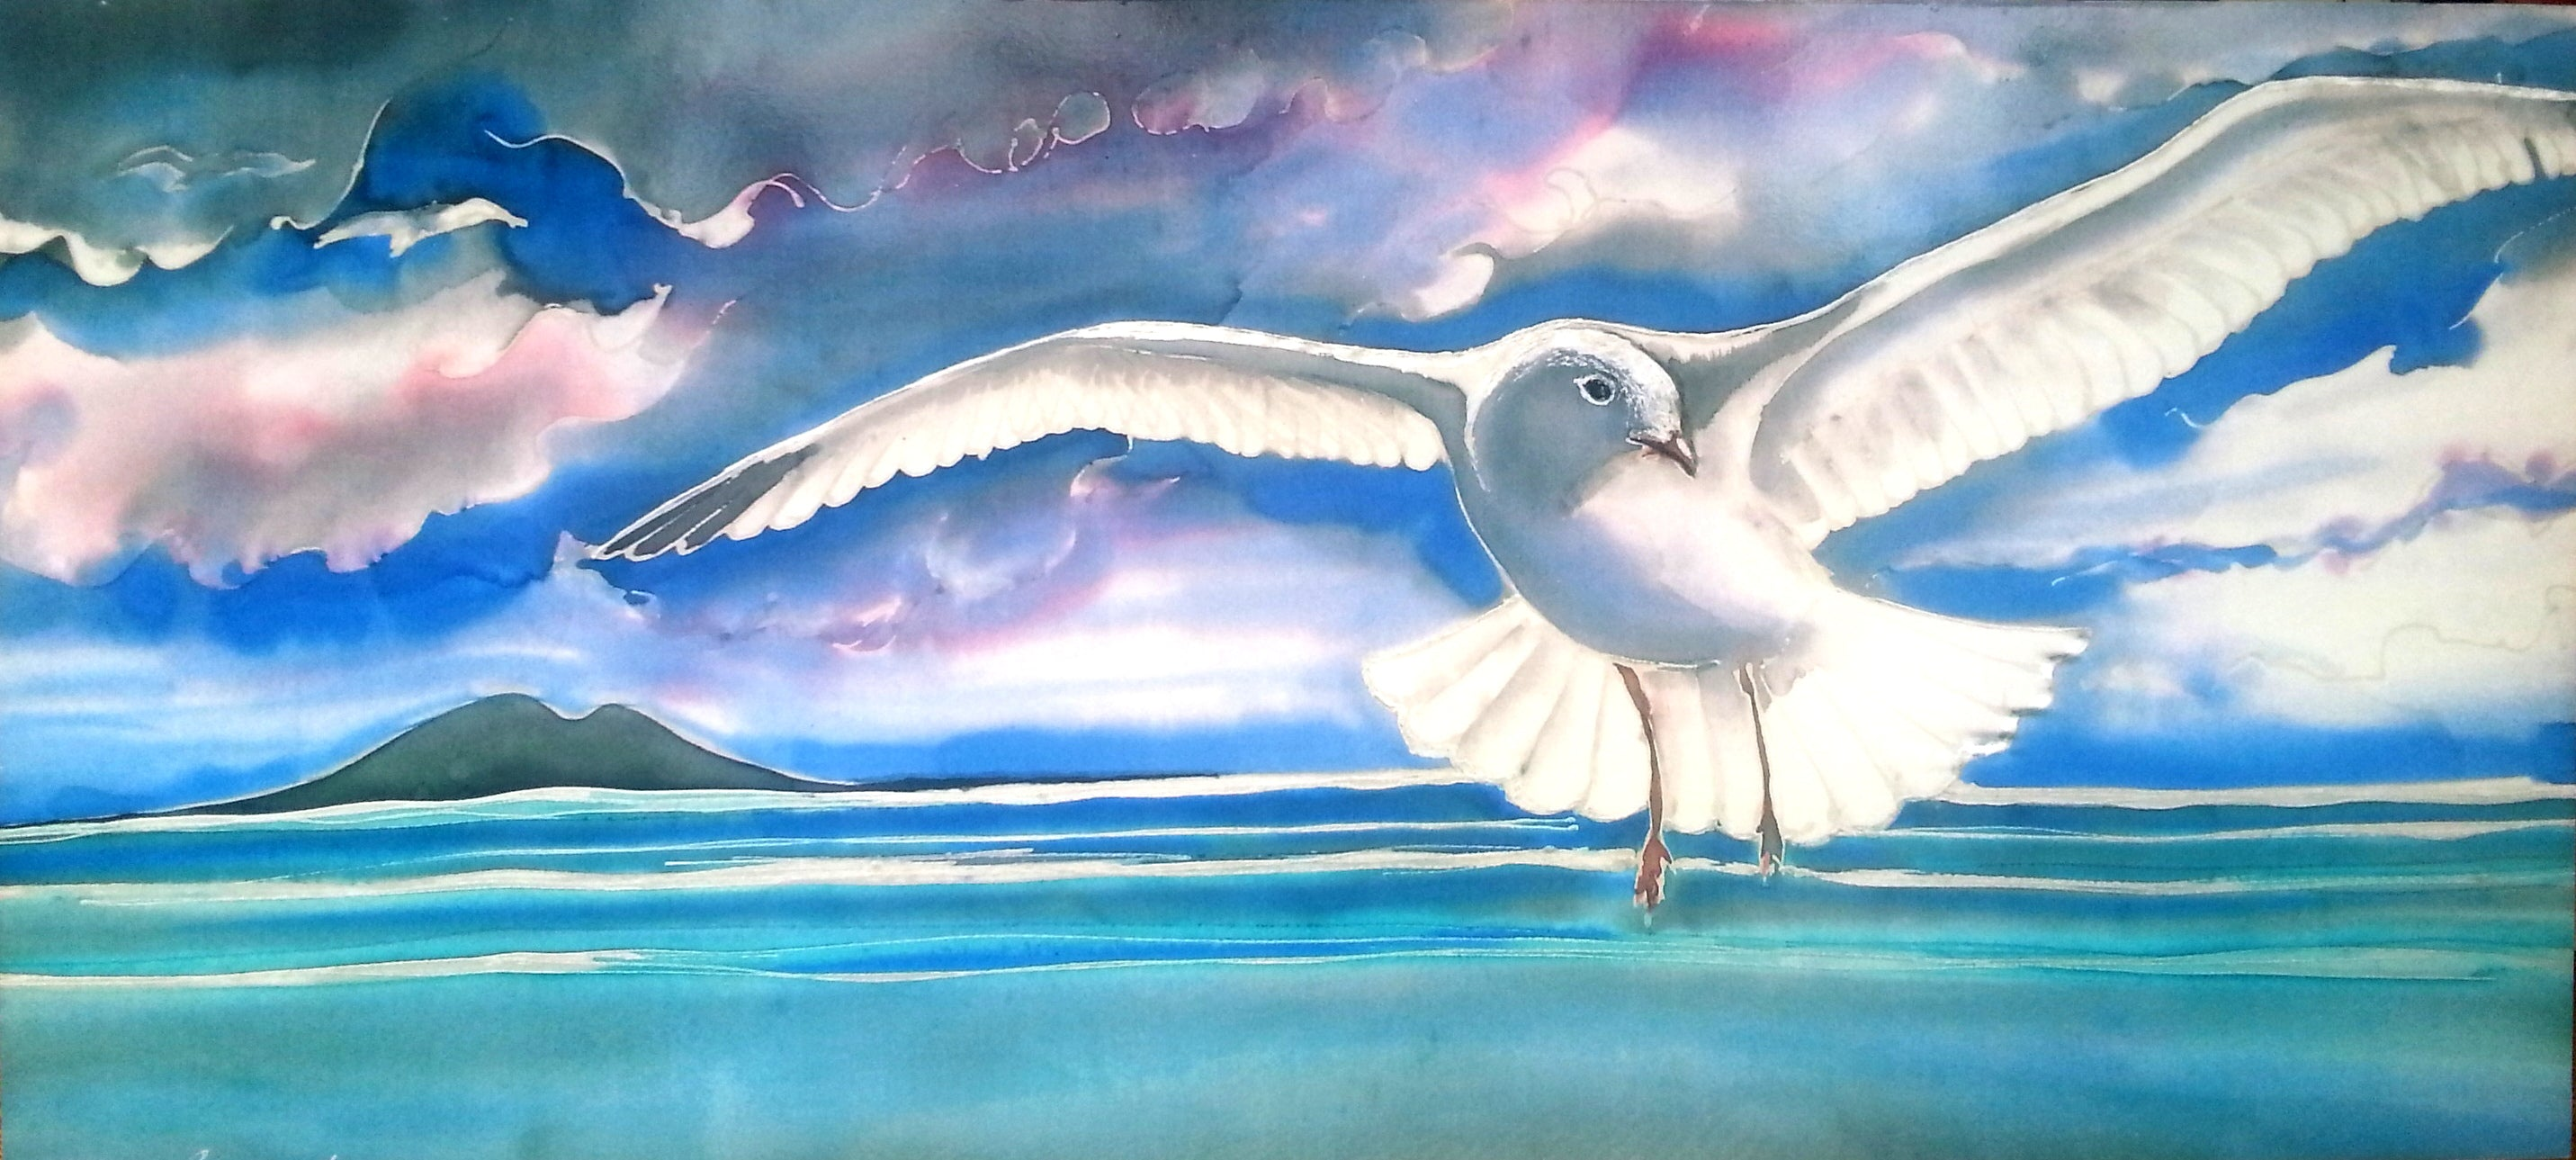 Seagull in Flight over Rangitoto - Outdoor Garden Art Panel - Satherley Silks NZ